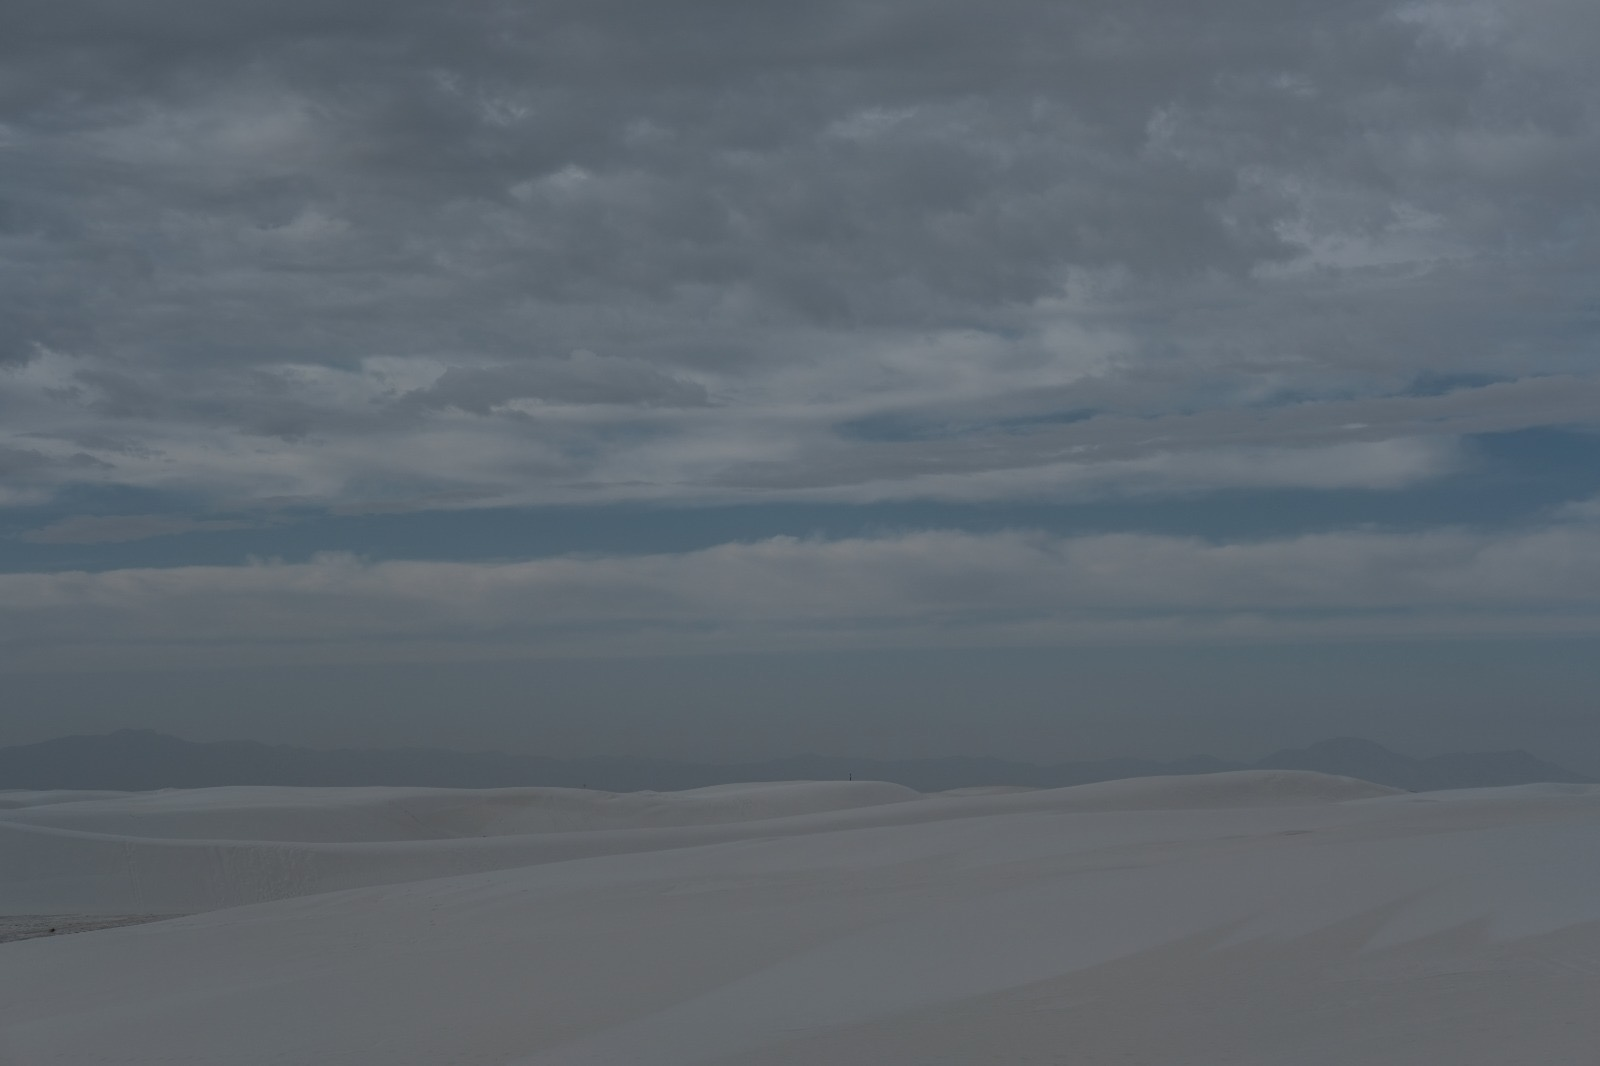 White Sands Nationalpark in New Mexico, close to El Paso, TX / Photo by teetharejade.com